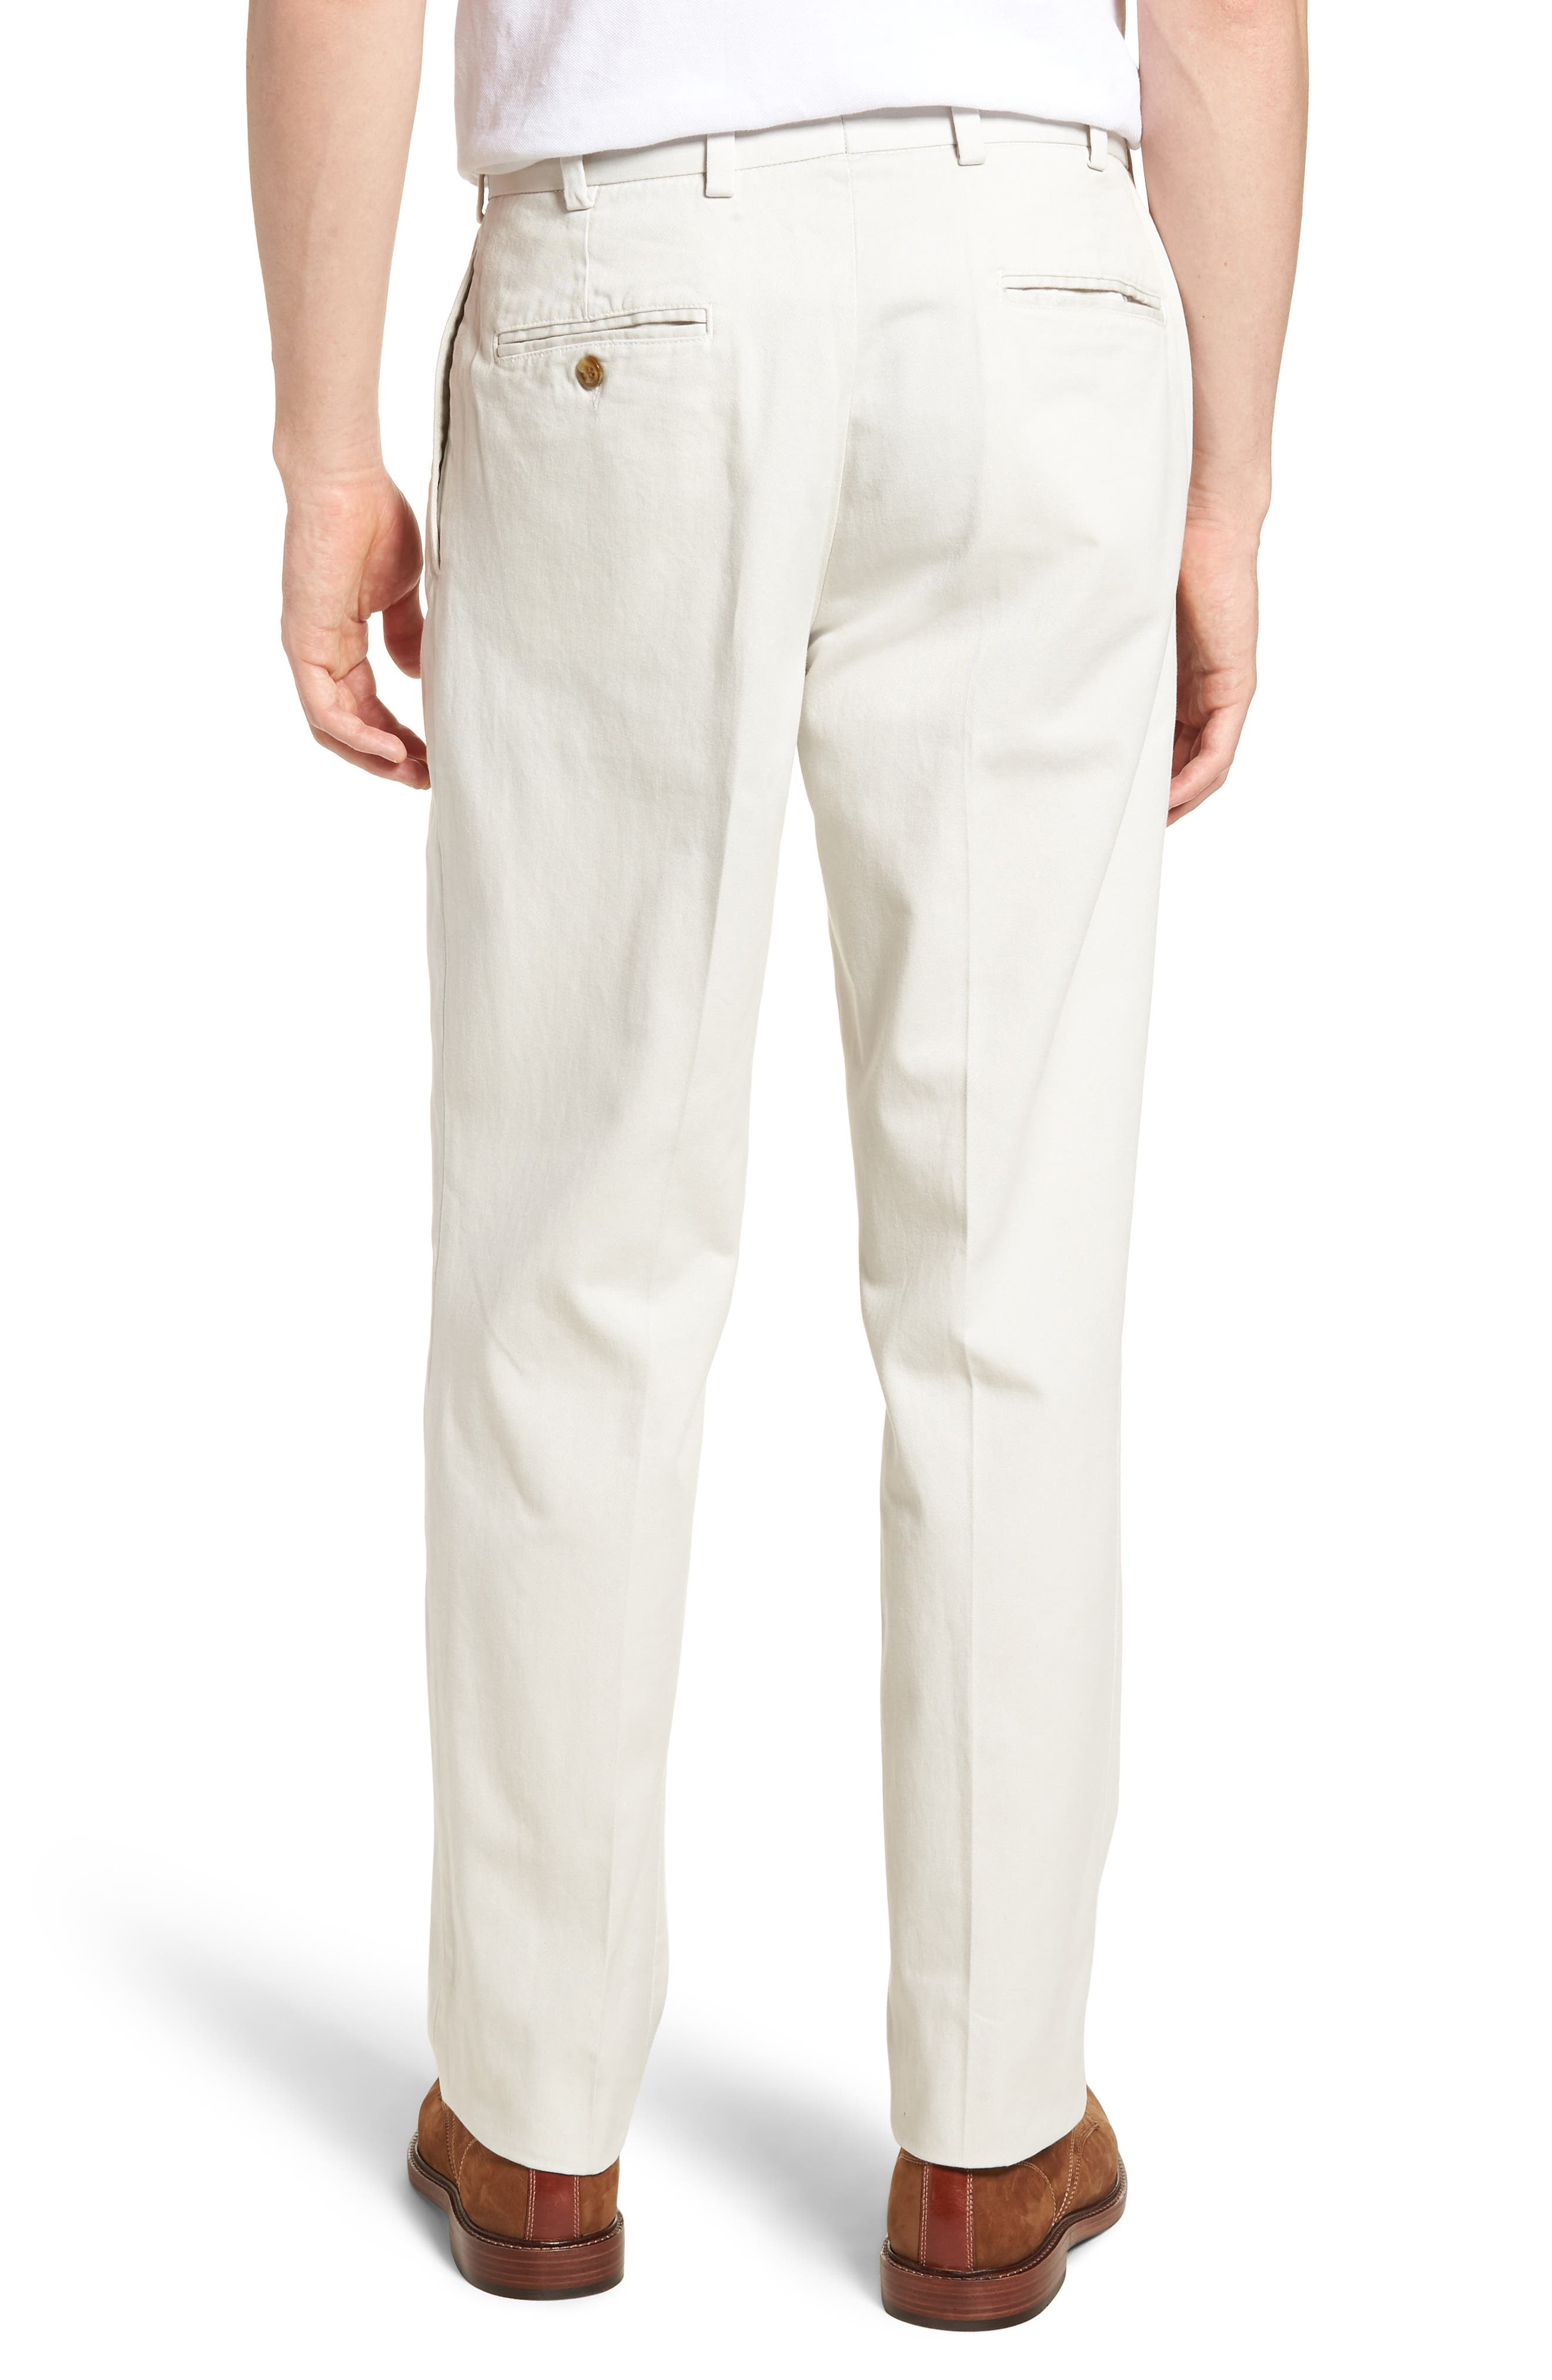 M2 Classic Fit Vintage Twill Pleated Pants,                             Alternate thumbnail 2, color,                             270